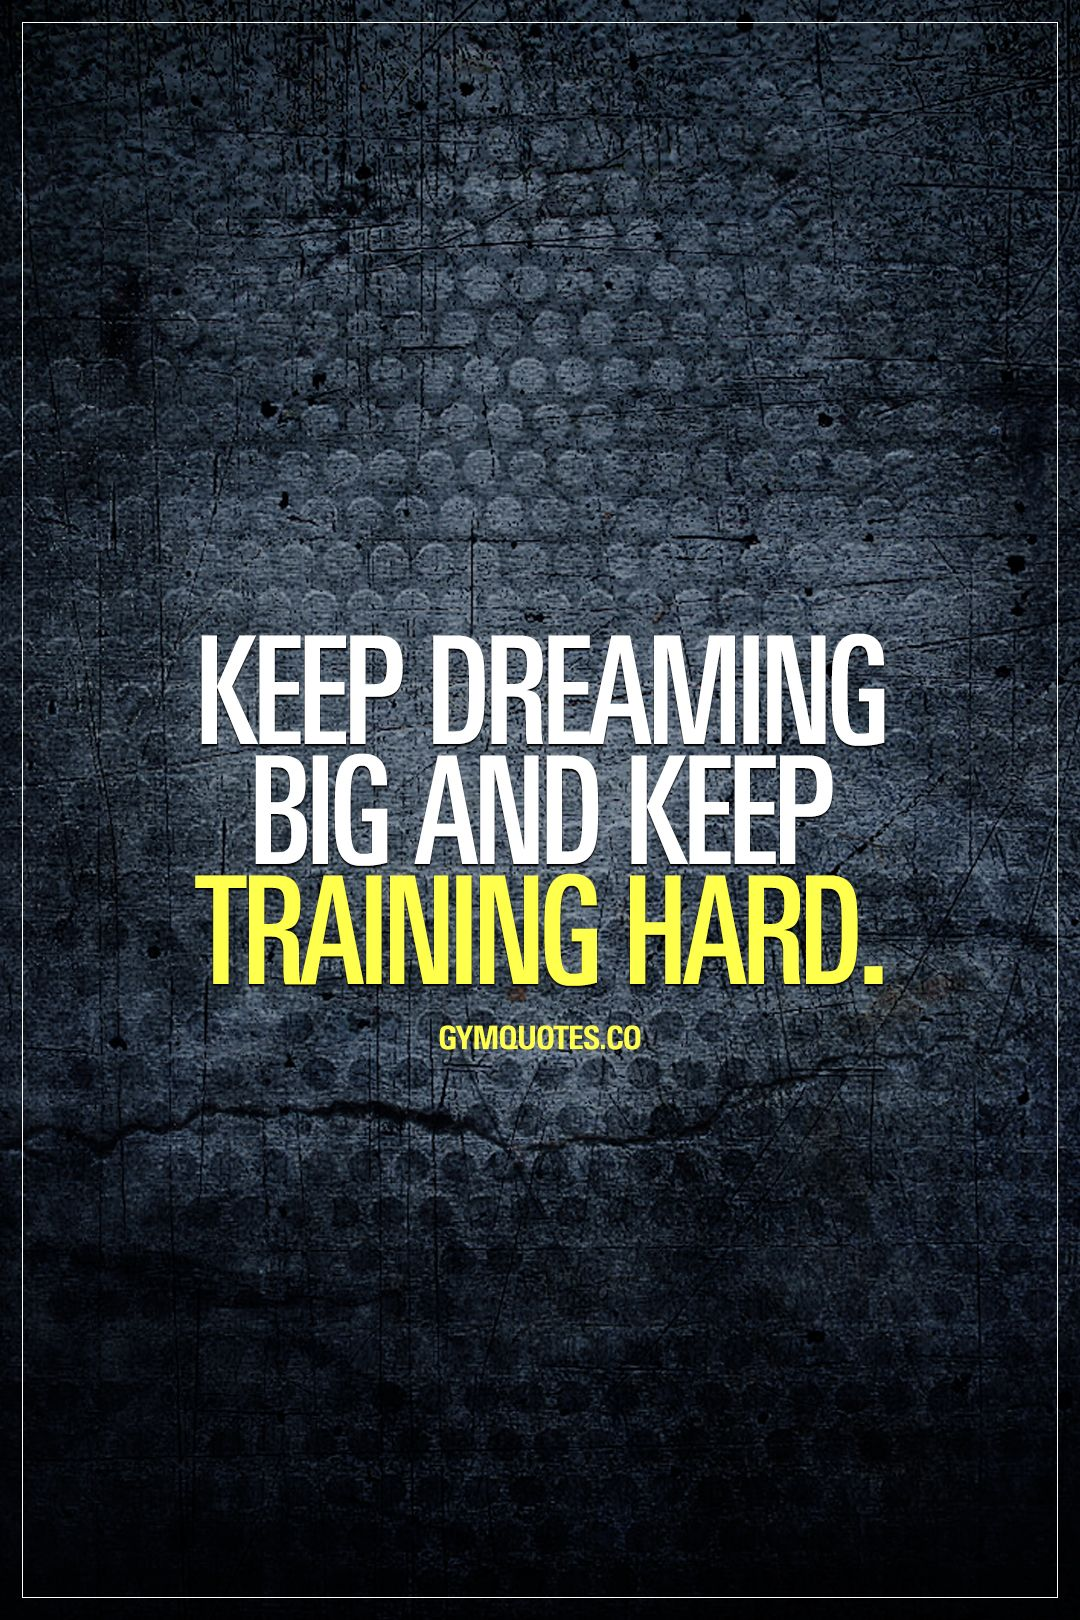 Training Quotes Keep Dreaming Big And Keep Training Hardnever Stop Dreaming Big